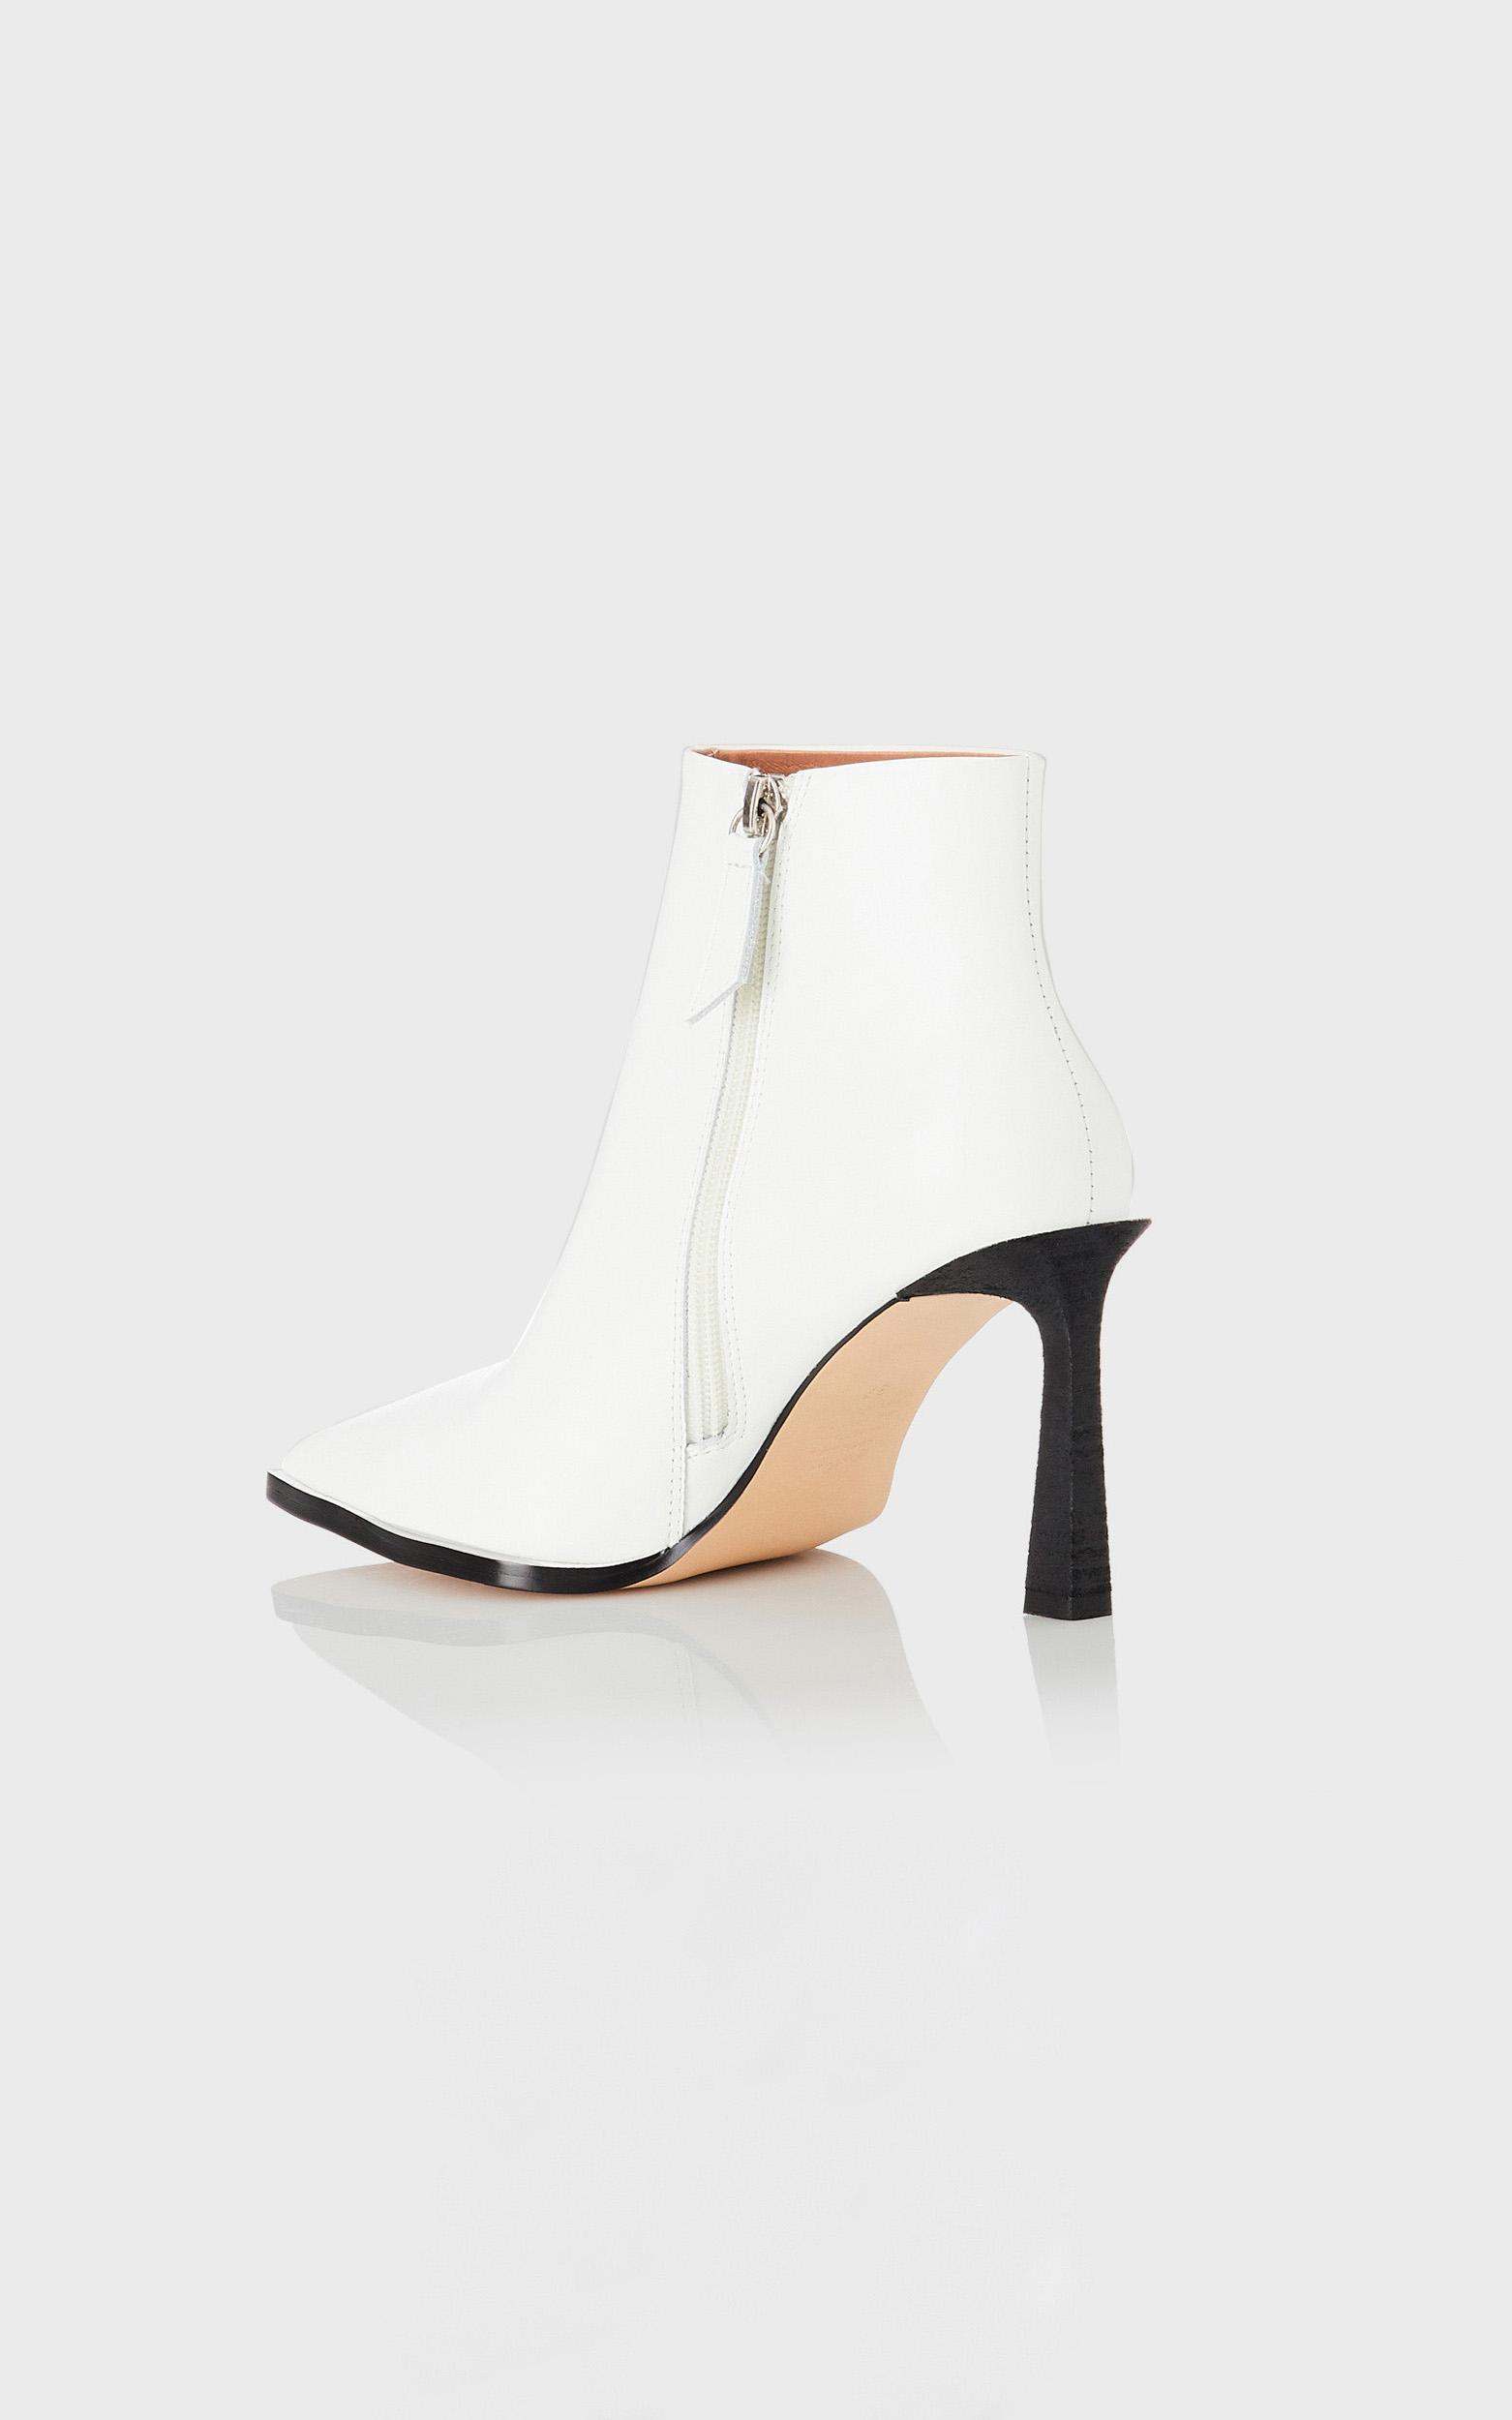 Alias Mae - Zara Boots in White Leather - 36, White, hi-res image number null